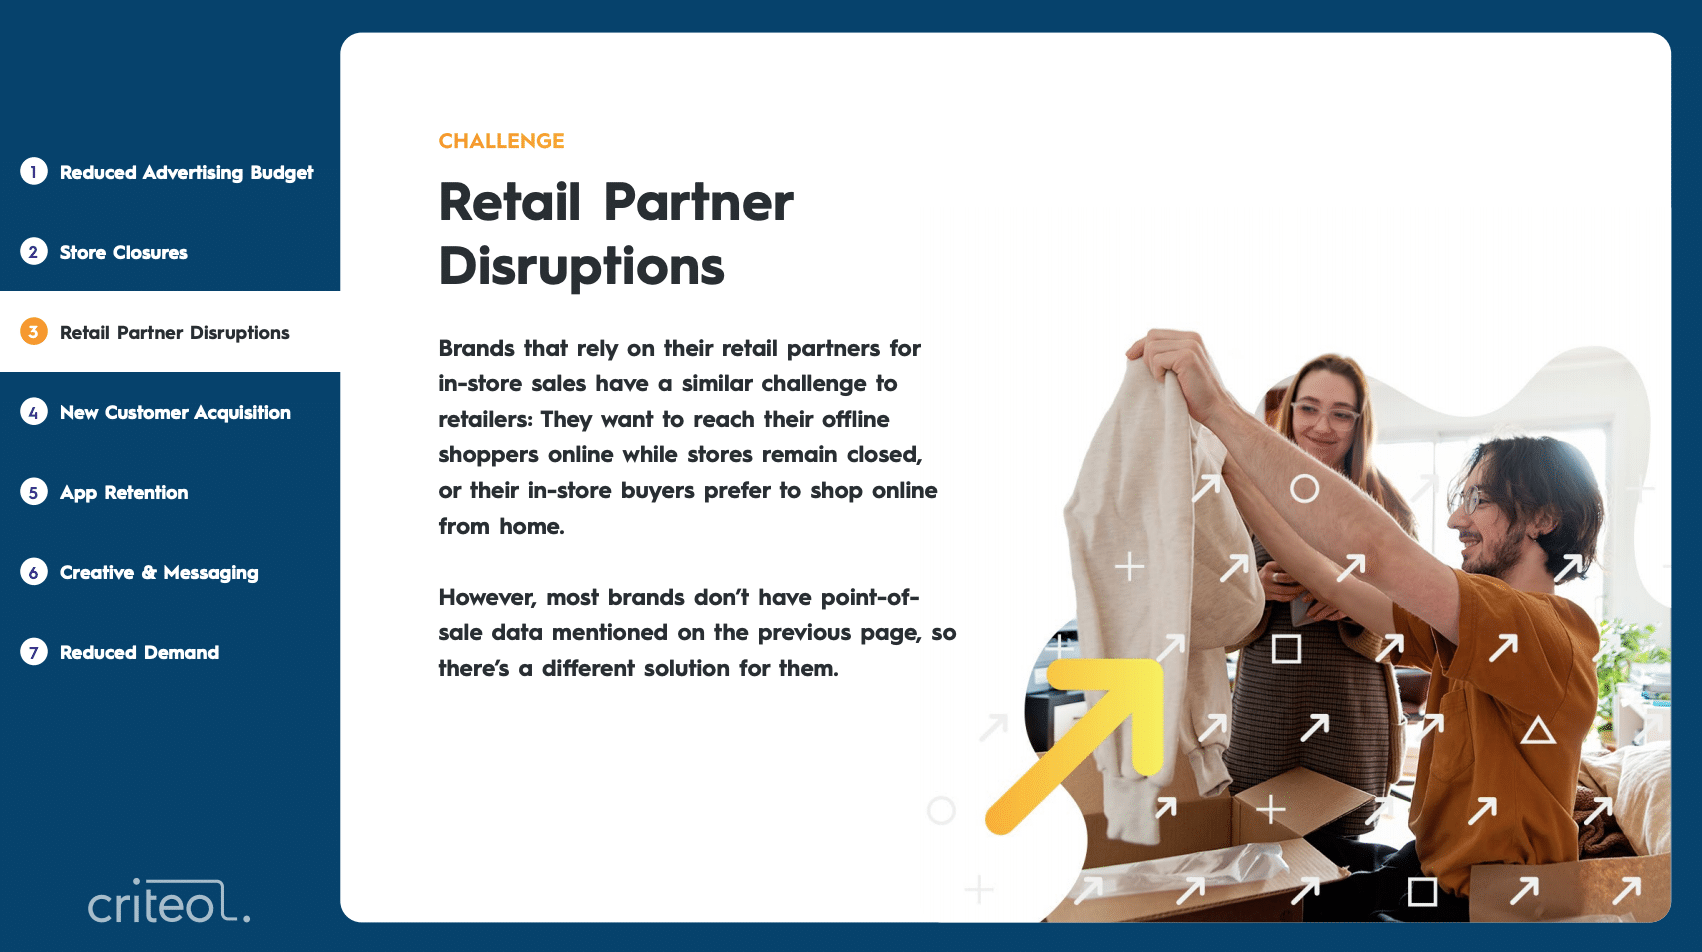 Challenge: Retail Partner Disruptions. Brands that rely on their retail partners for in-store sales have a similar challenge to retailers: They want to reach their offline shoppers online while stores remain closed, or their in-store buyers prefer to shop online from home. However, most brands don't have point-of-sale data, so there's a different solution for them.